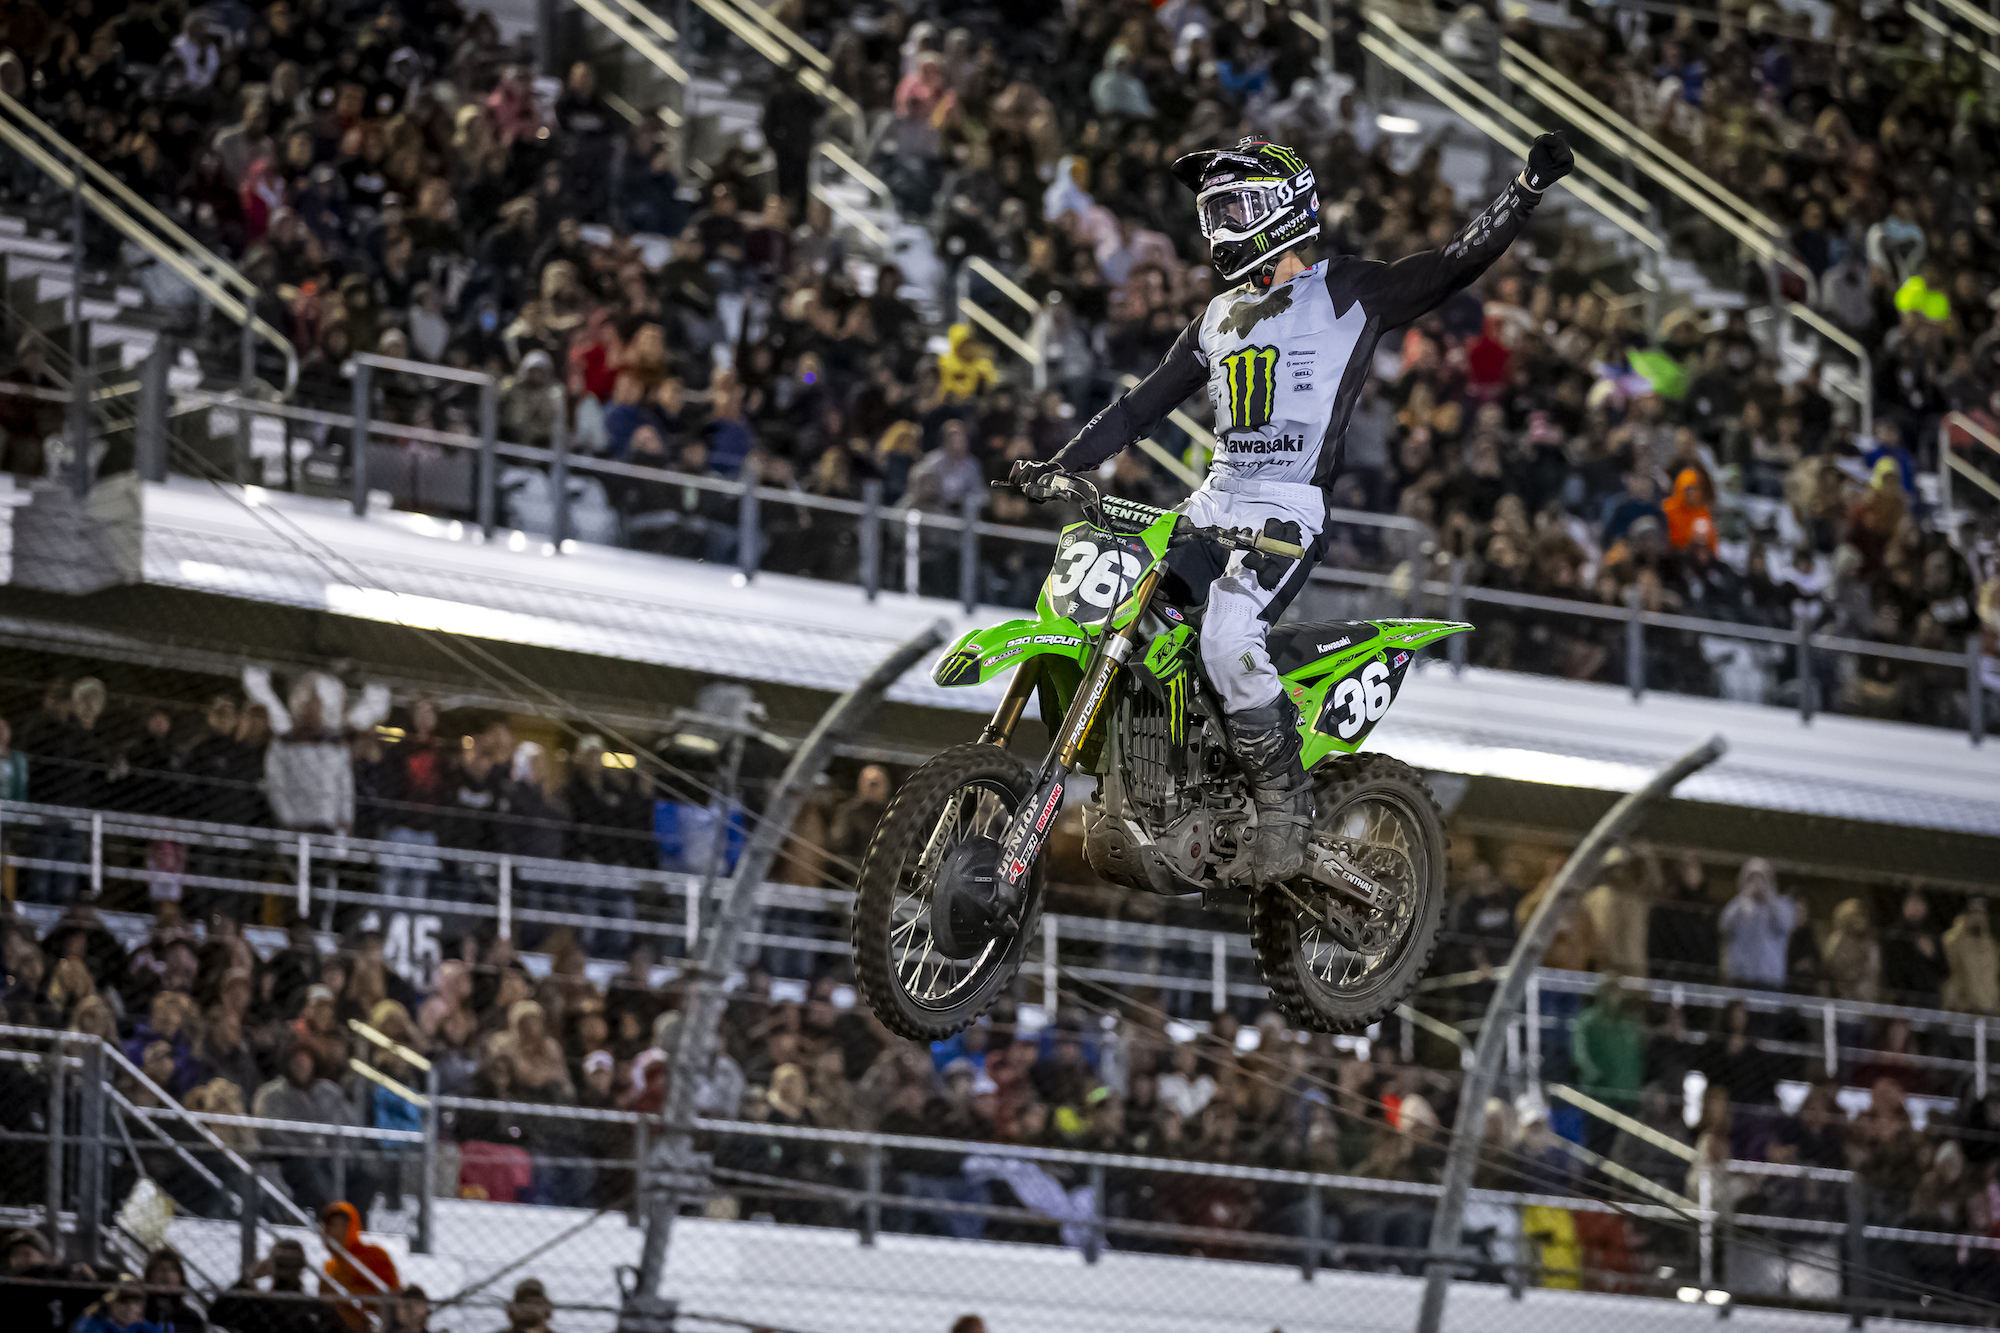 Monster Energy Pro Circuit Kawasaki's Marchbanks Races To First Career Win